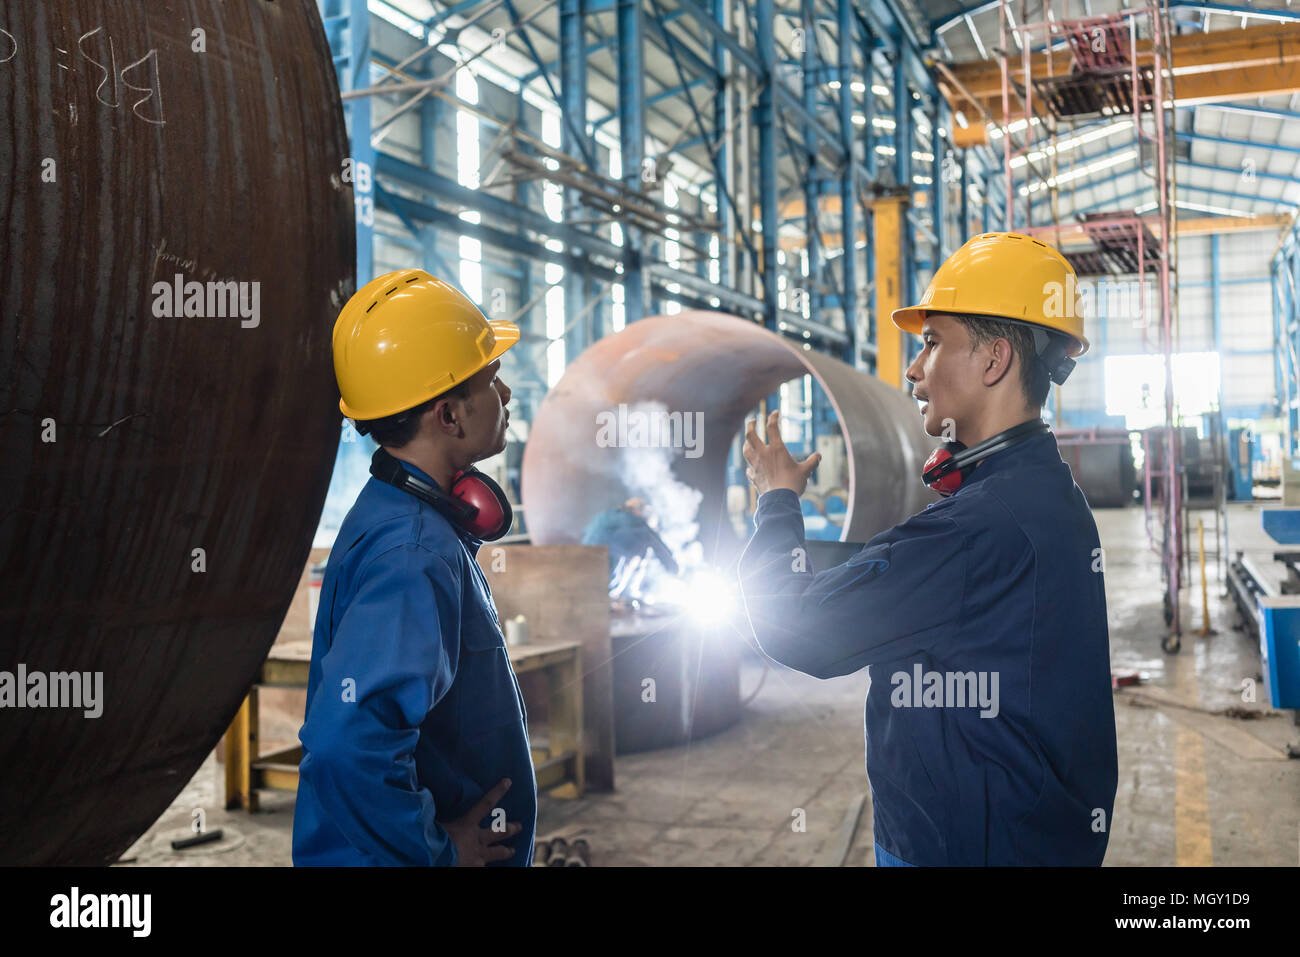 Two Asian experts talking while supervising fabrication - Stock Image